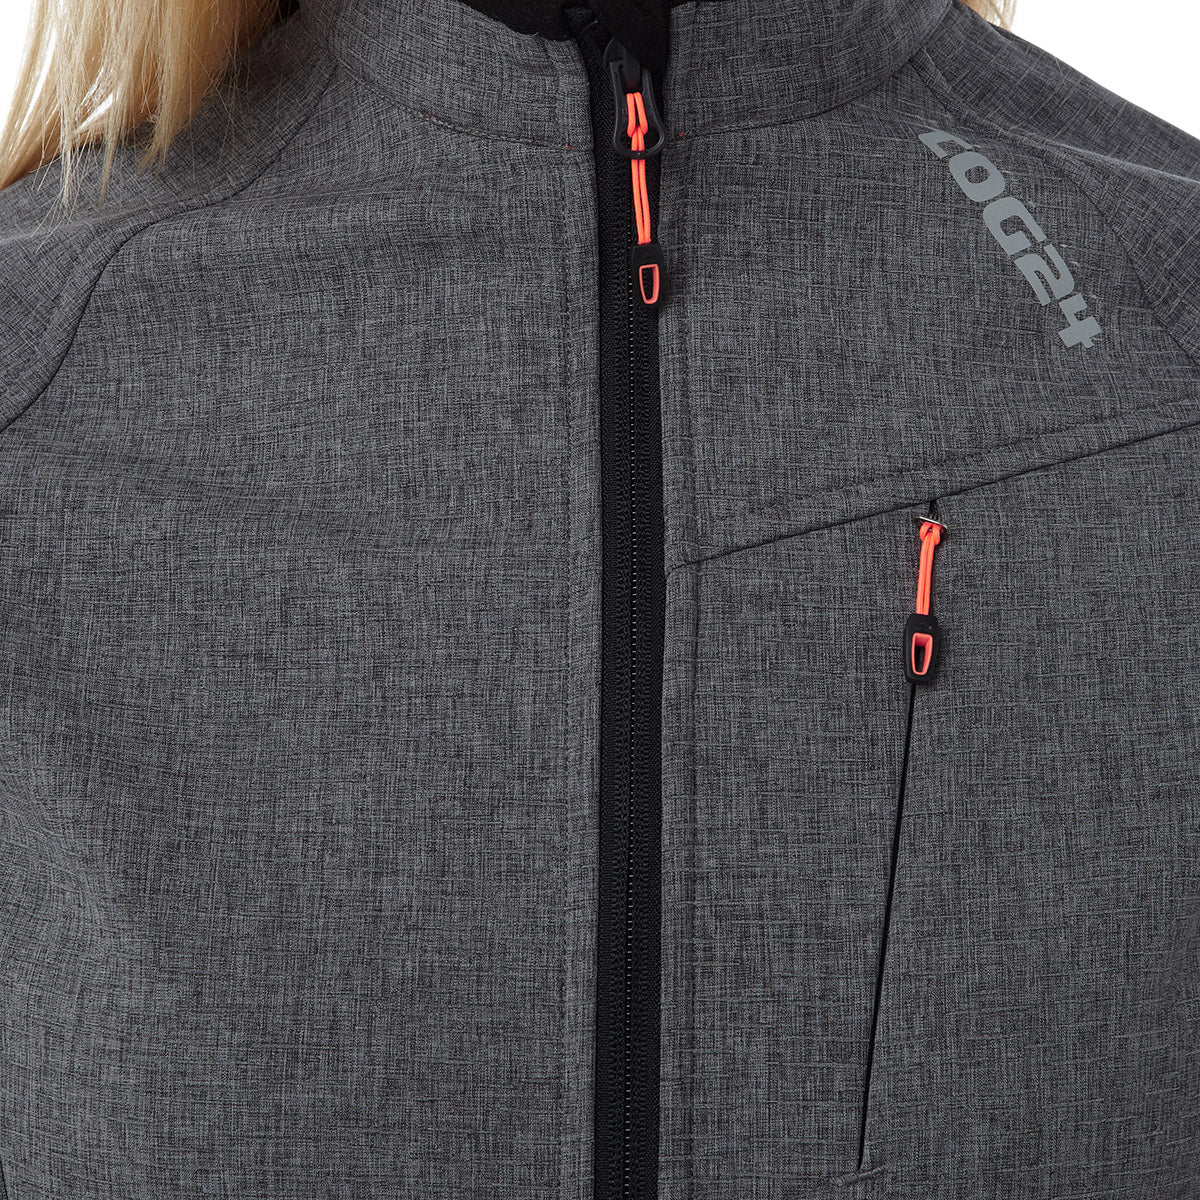 Foment Womens TCZ Softshell Reflective Jacket - Grey Marl image 4